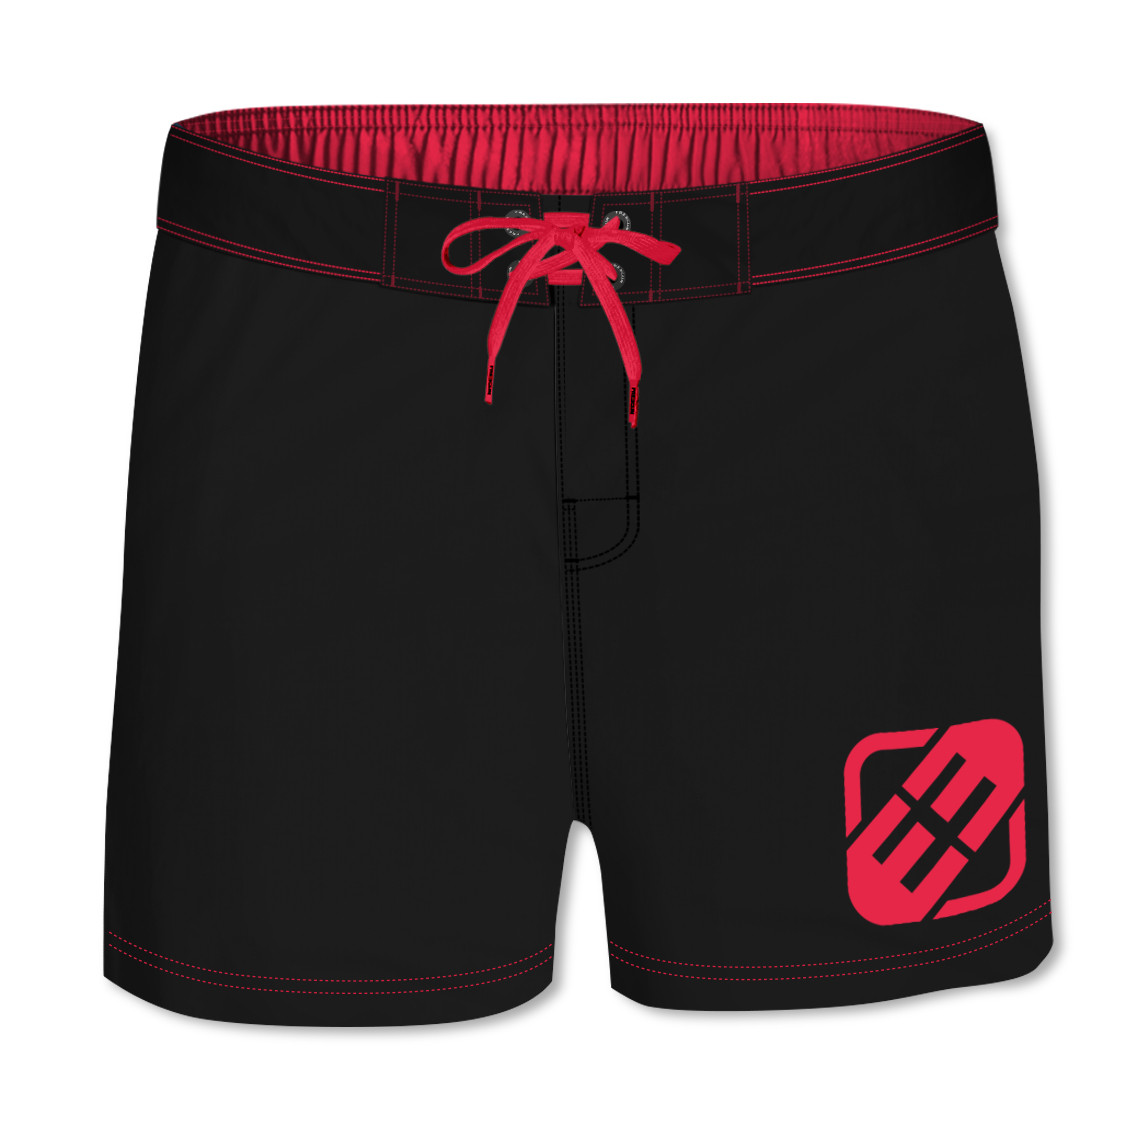 Boardshort court homme freegun uni rouge (photo)